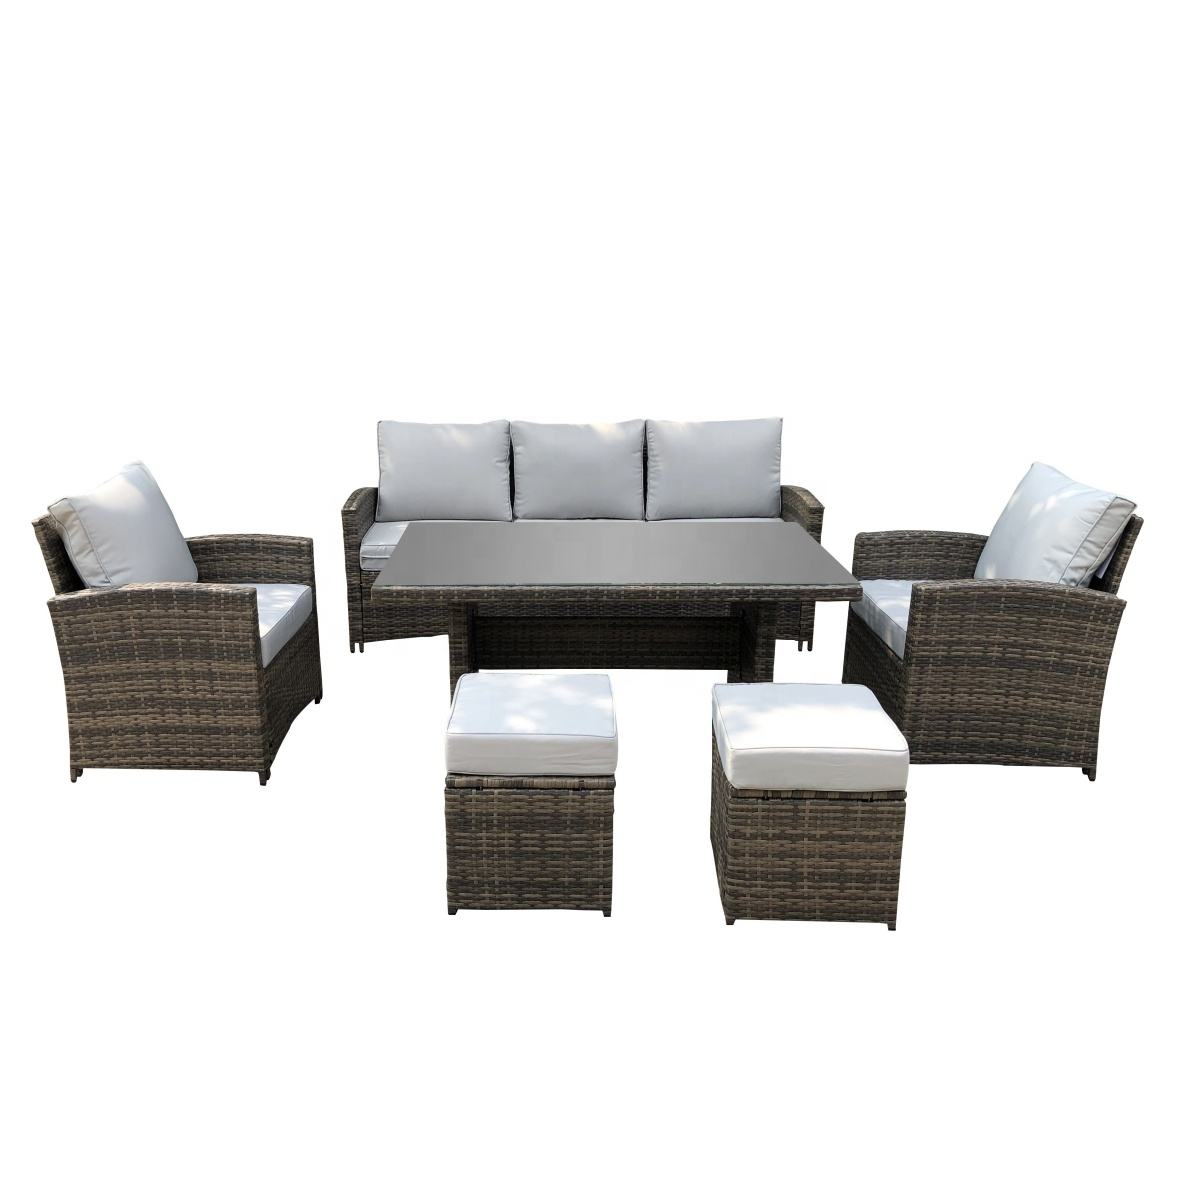 New Mexico Factory main product Garden Rattan furniture outdoor furniture for sale